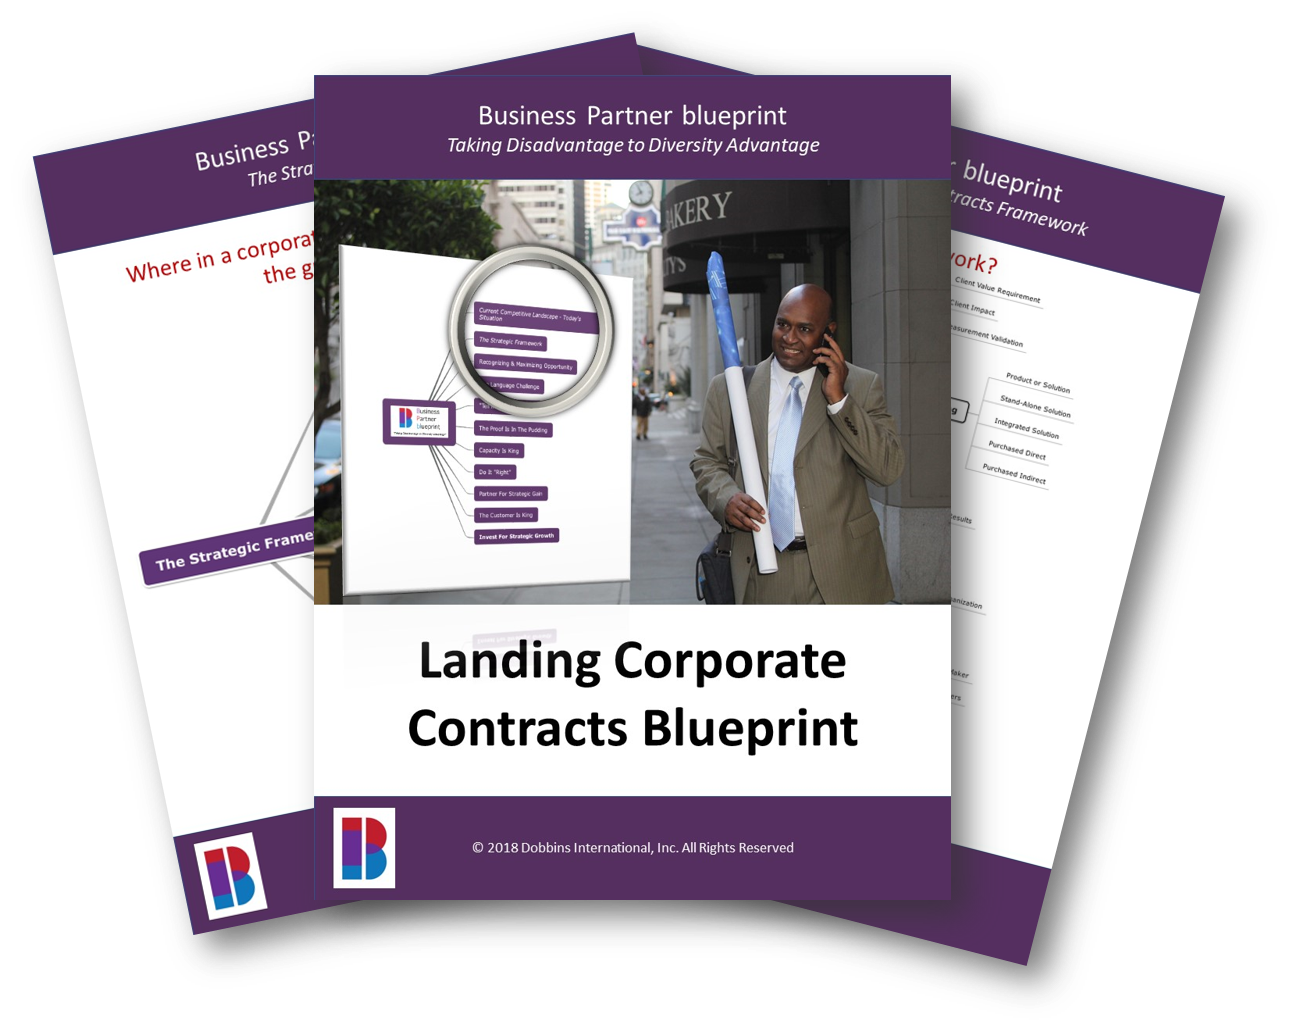 Free - Landing Corporate Contracts Blueprint Mindmap